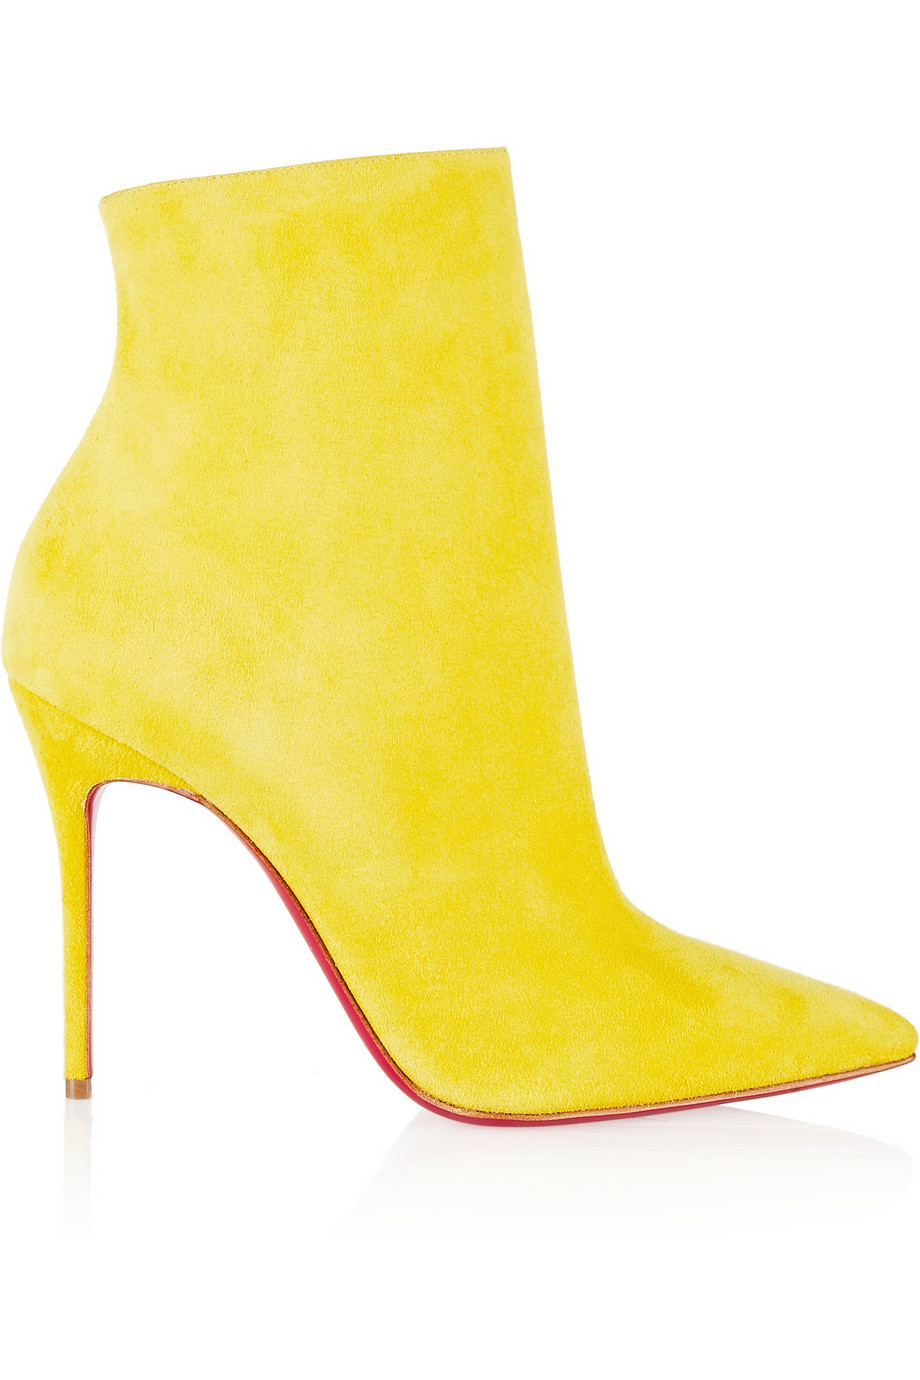 284d4324e78 Lyst - Christian Louboutin So Kate 100 Suede Ankle Boots in Yellow